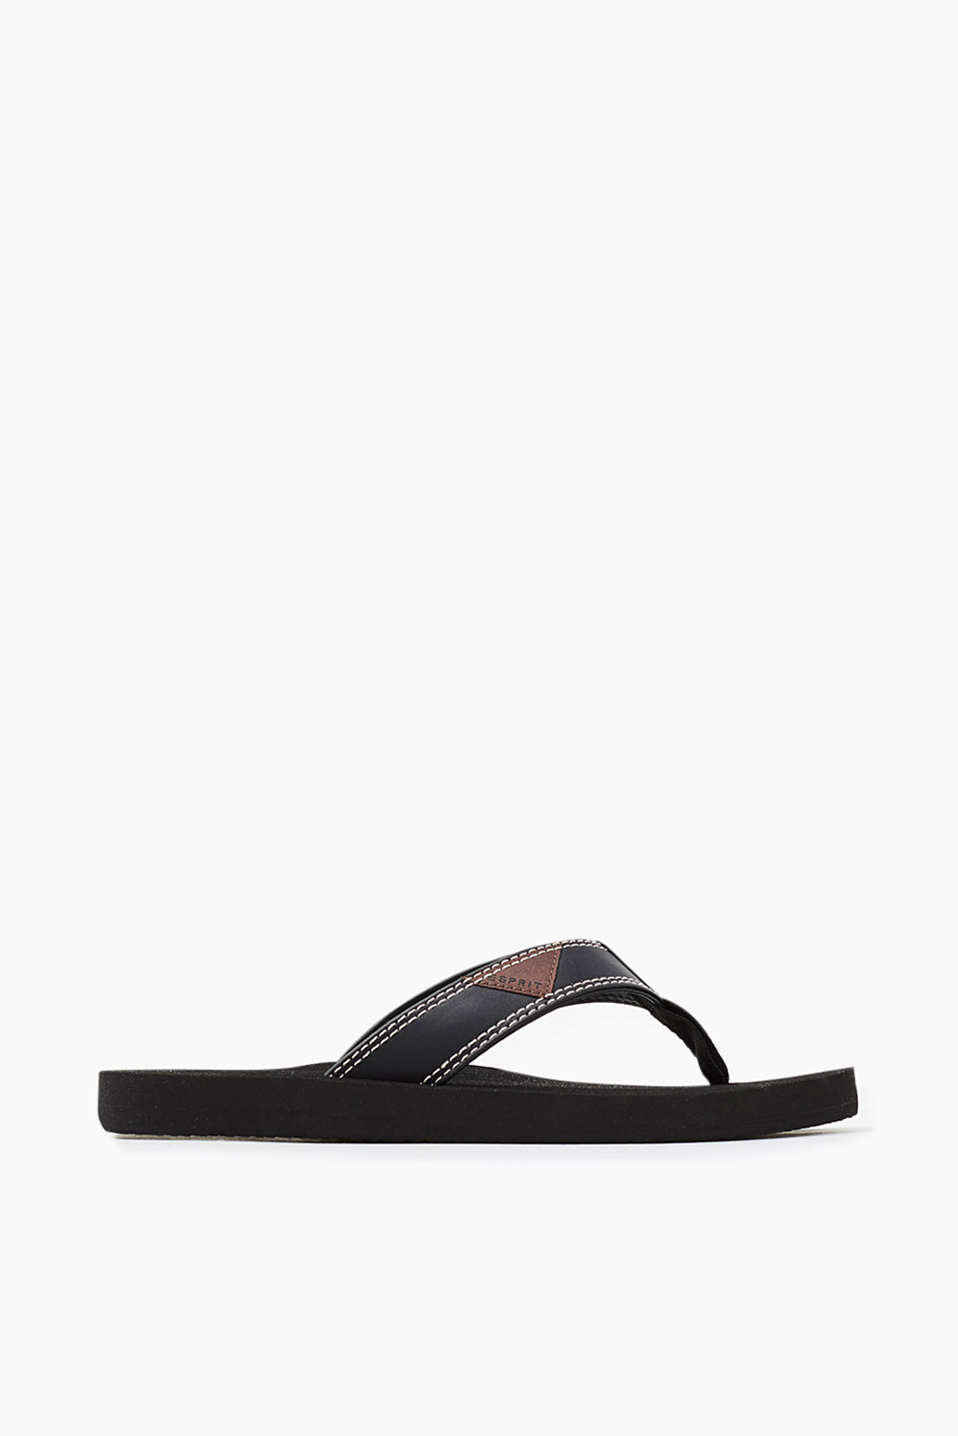 With textured neoprene straps: city slip slops in rubber